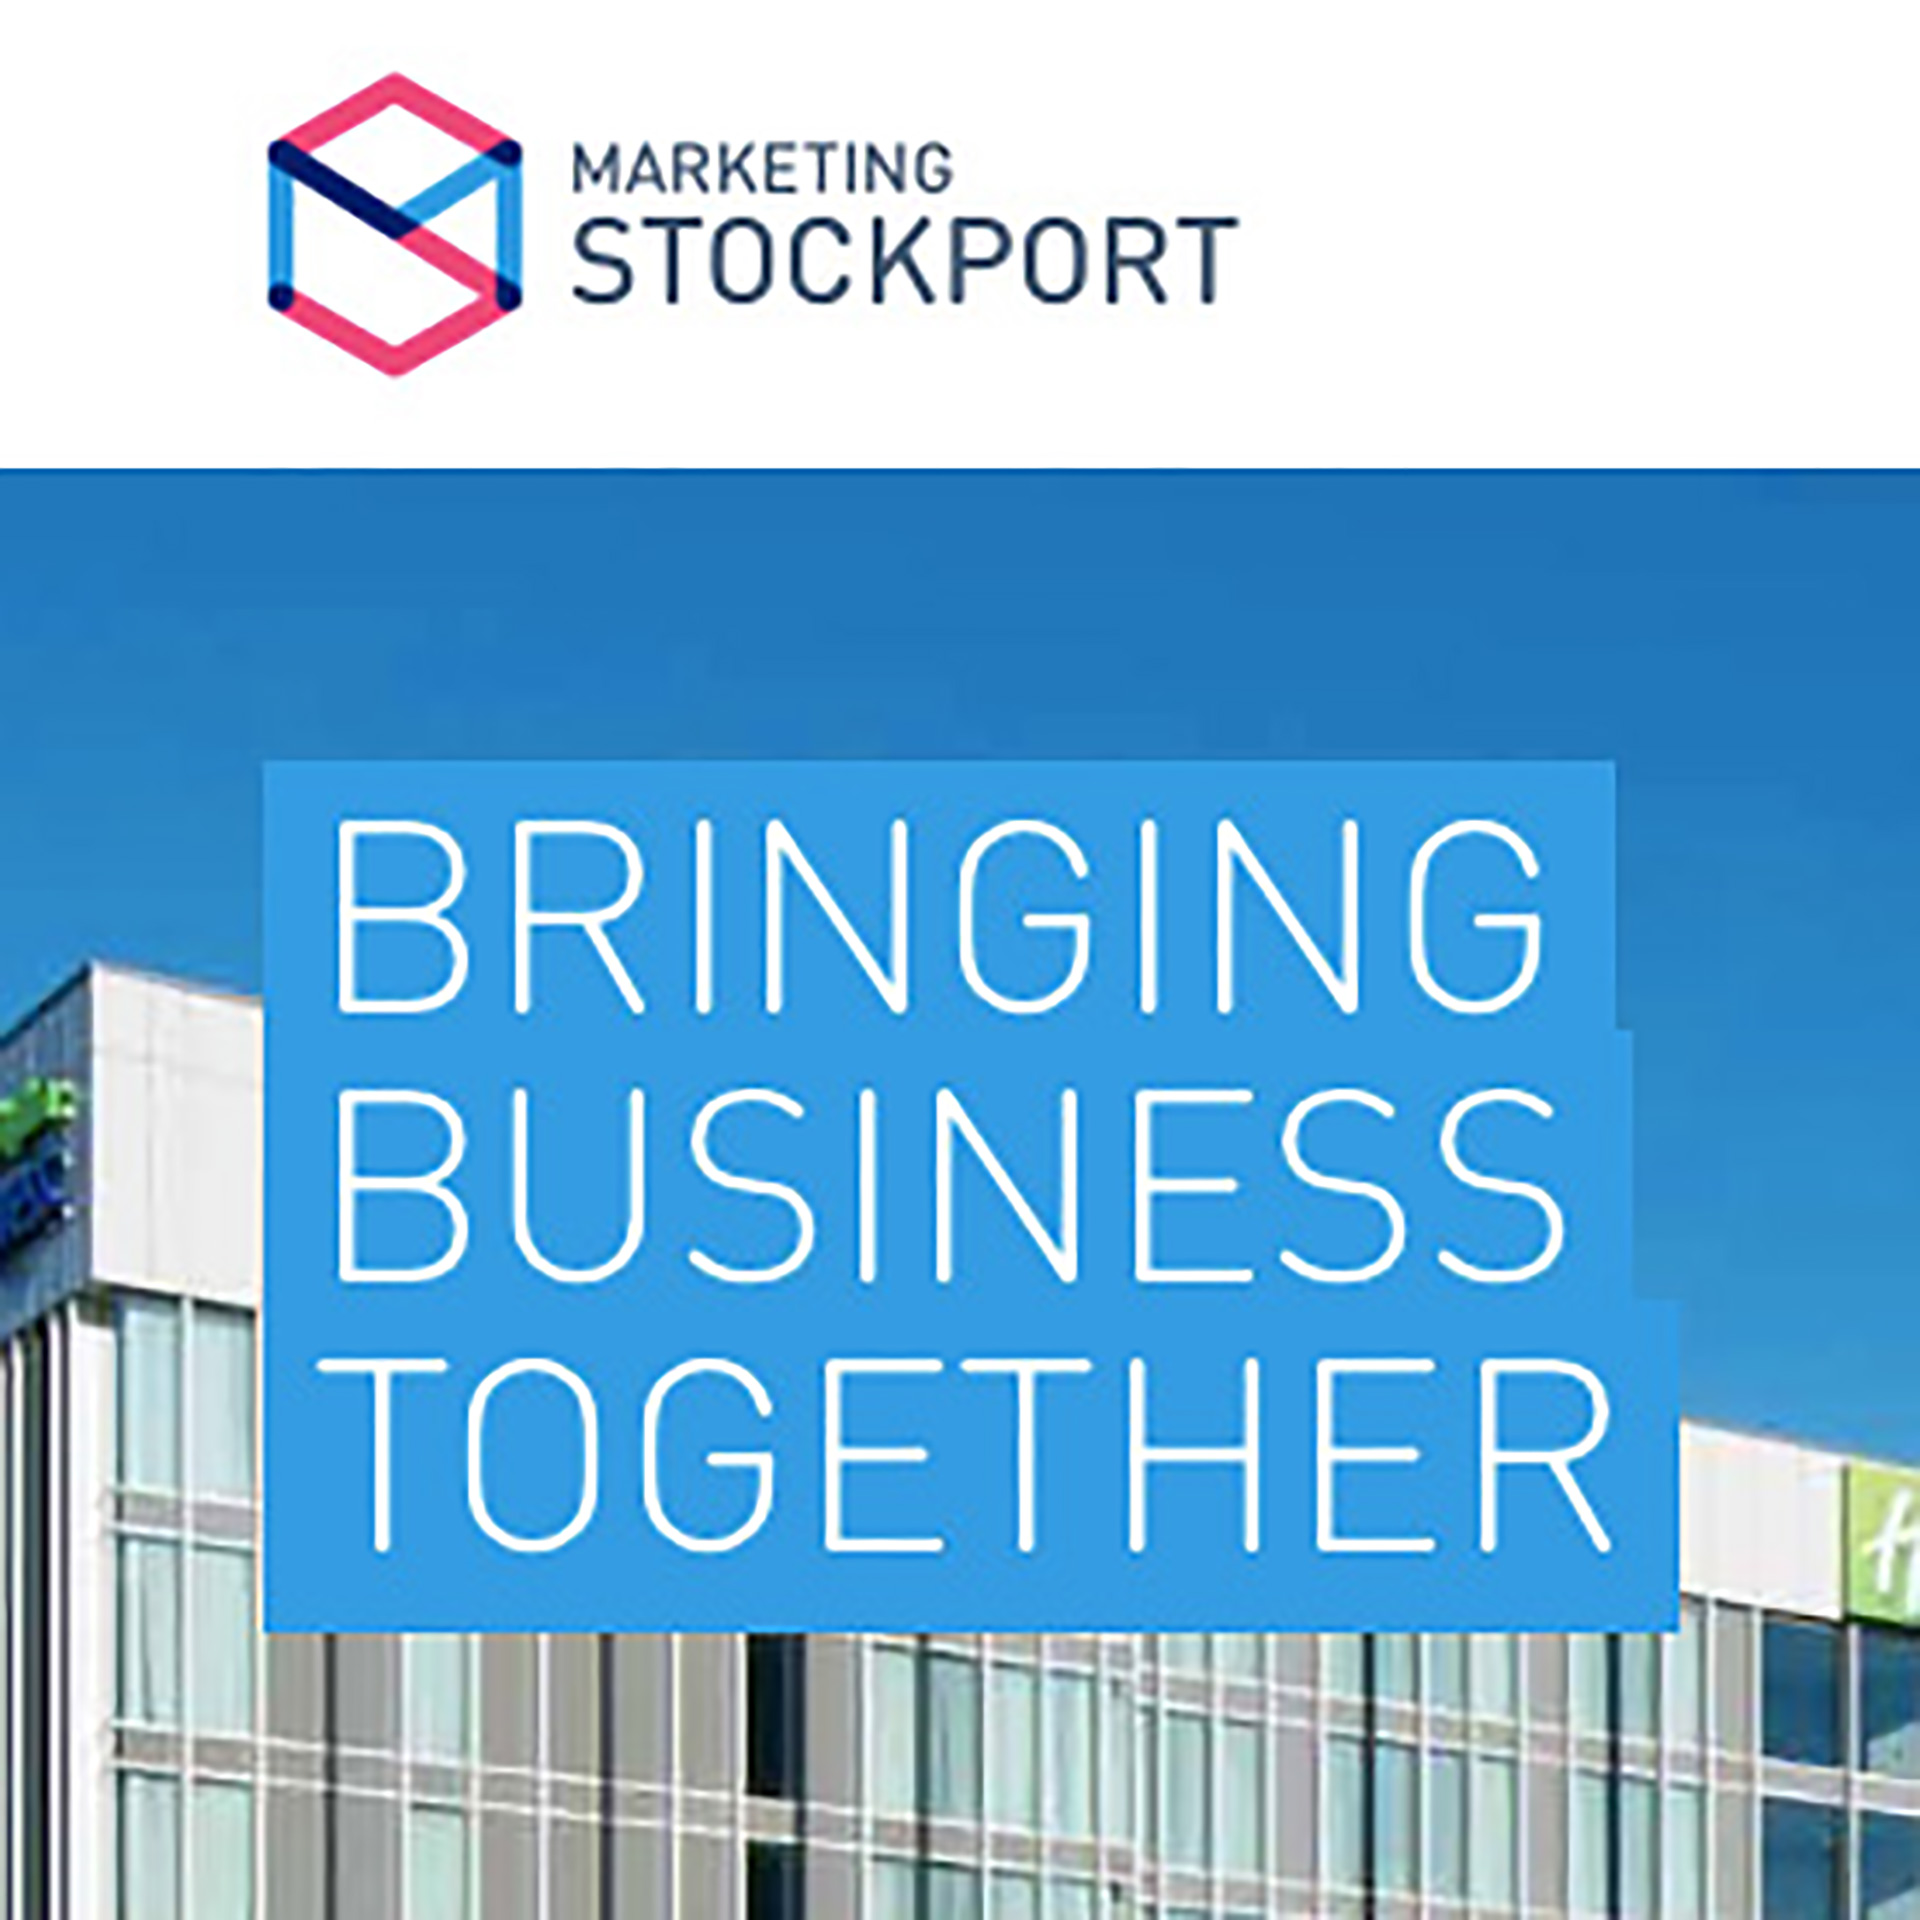 Marketing Stockport